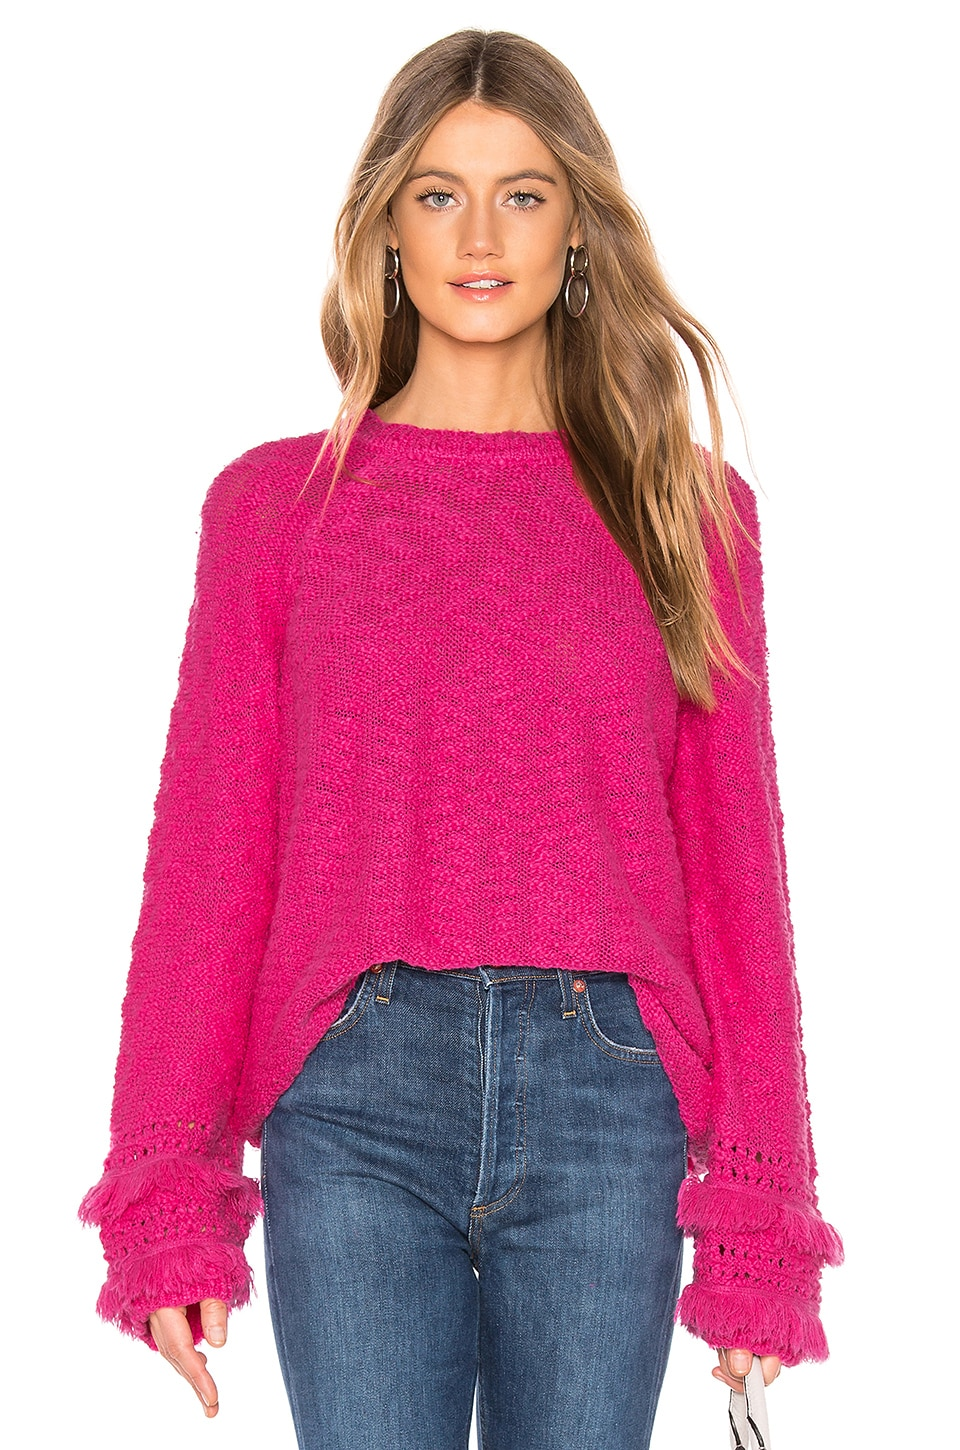 Lovers + Friends Friday Sweater in Hot Pink